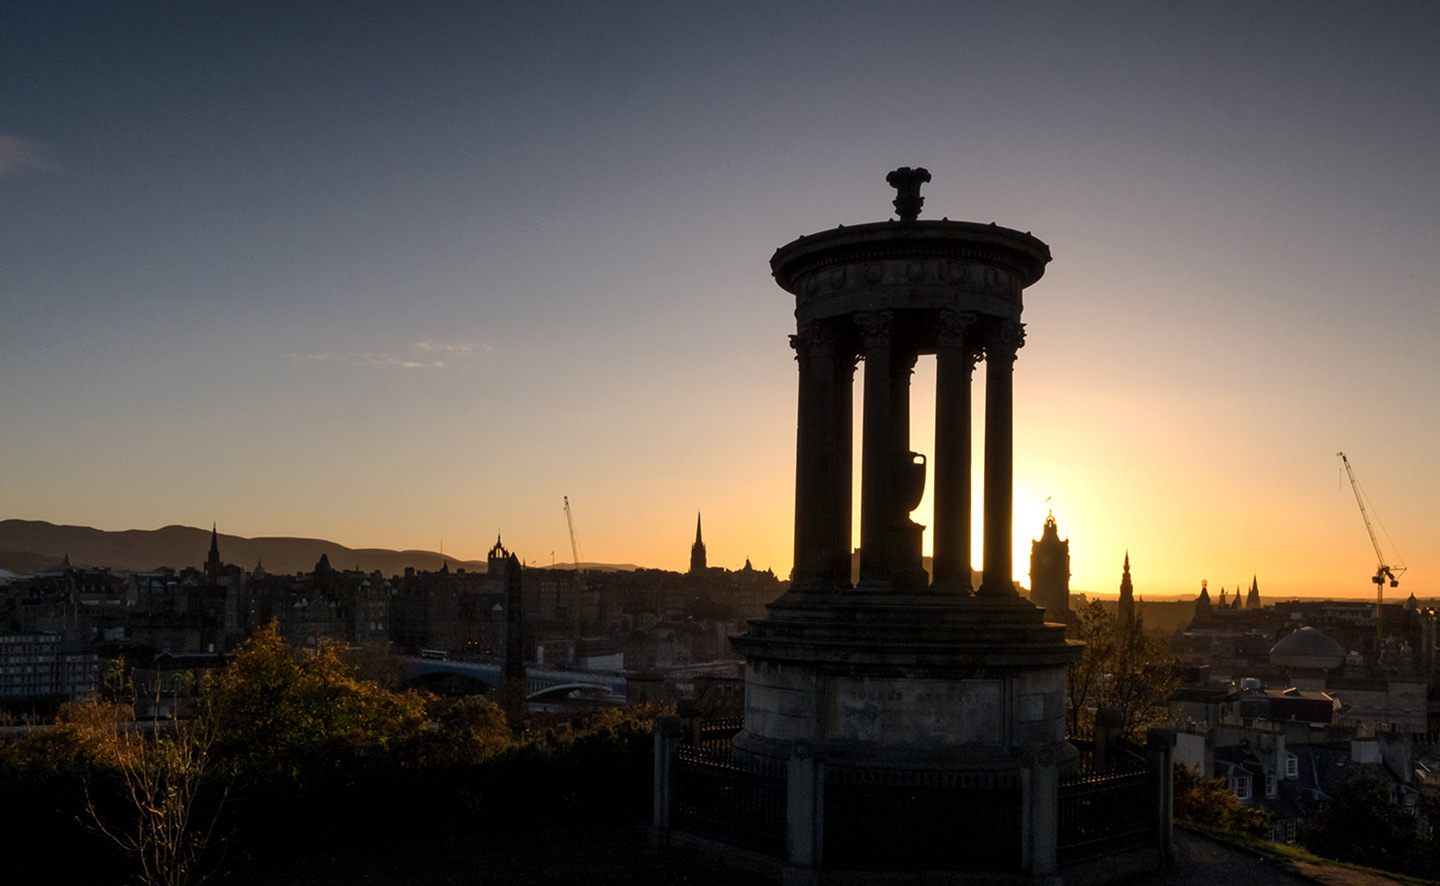 Sunset at Calton Hill, Edinburgh